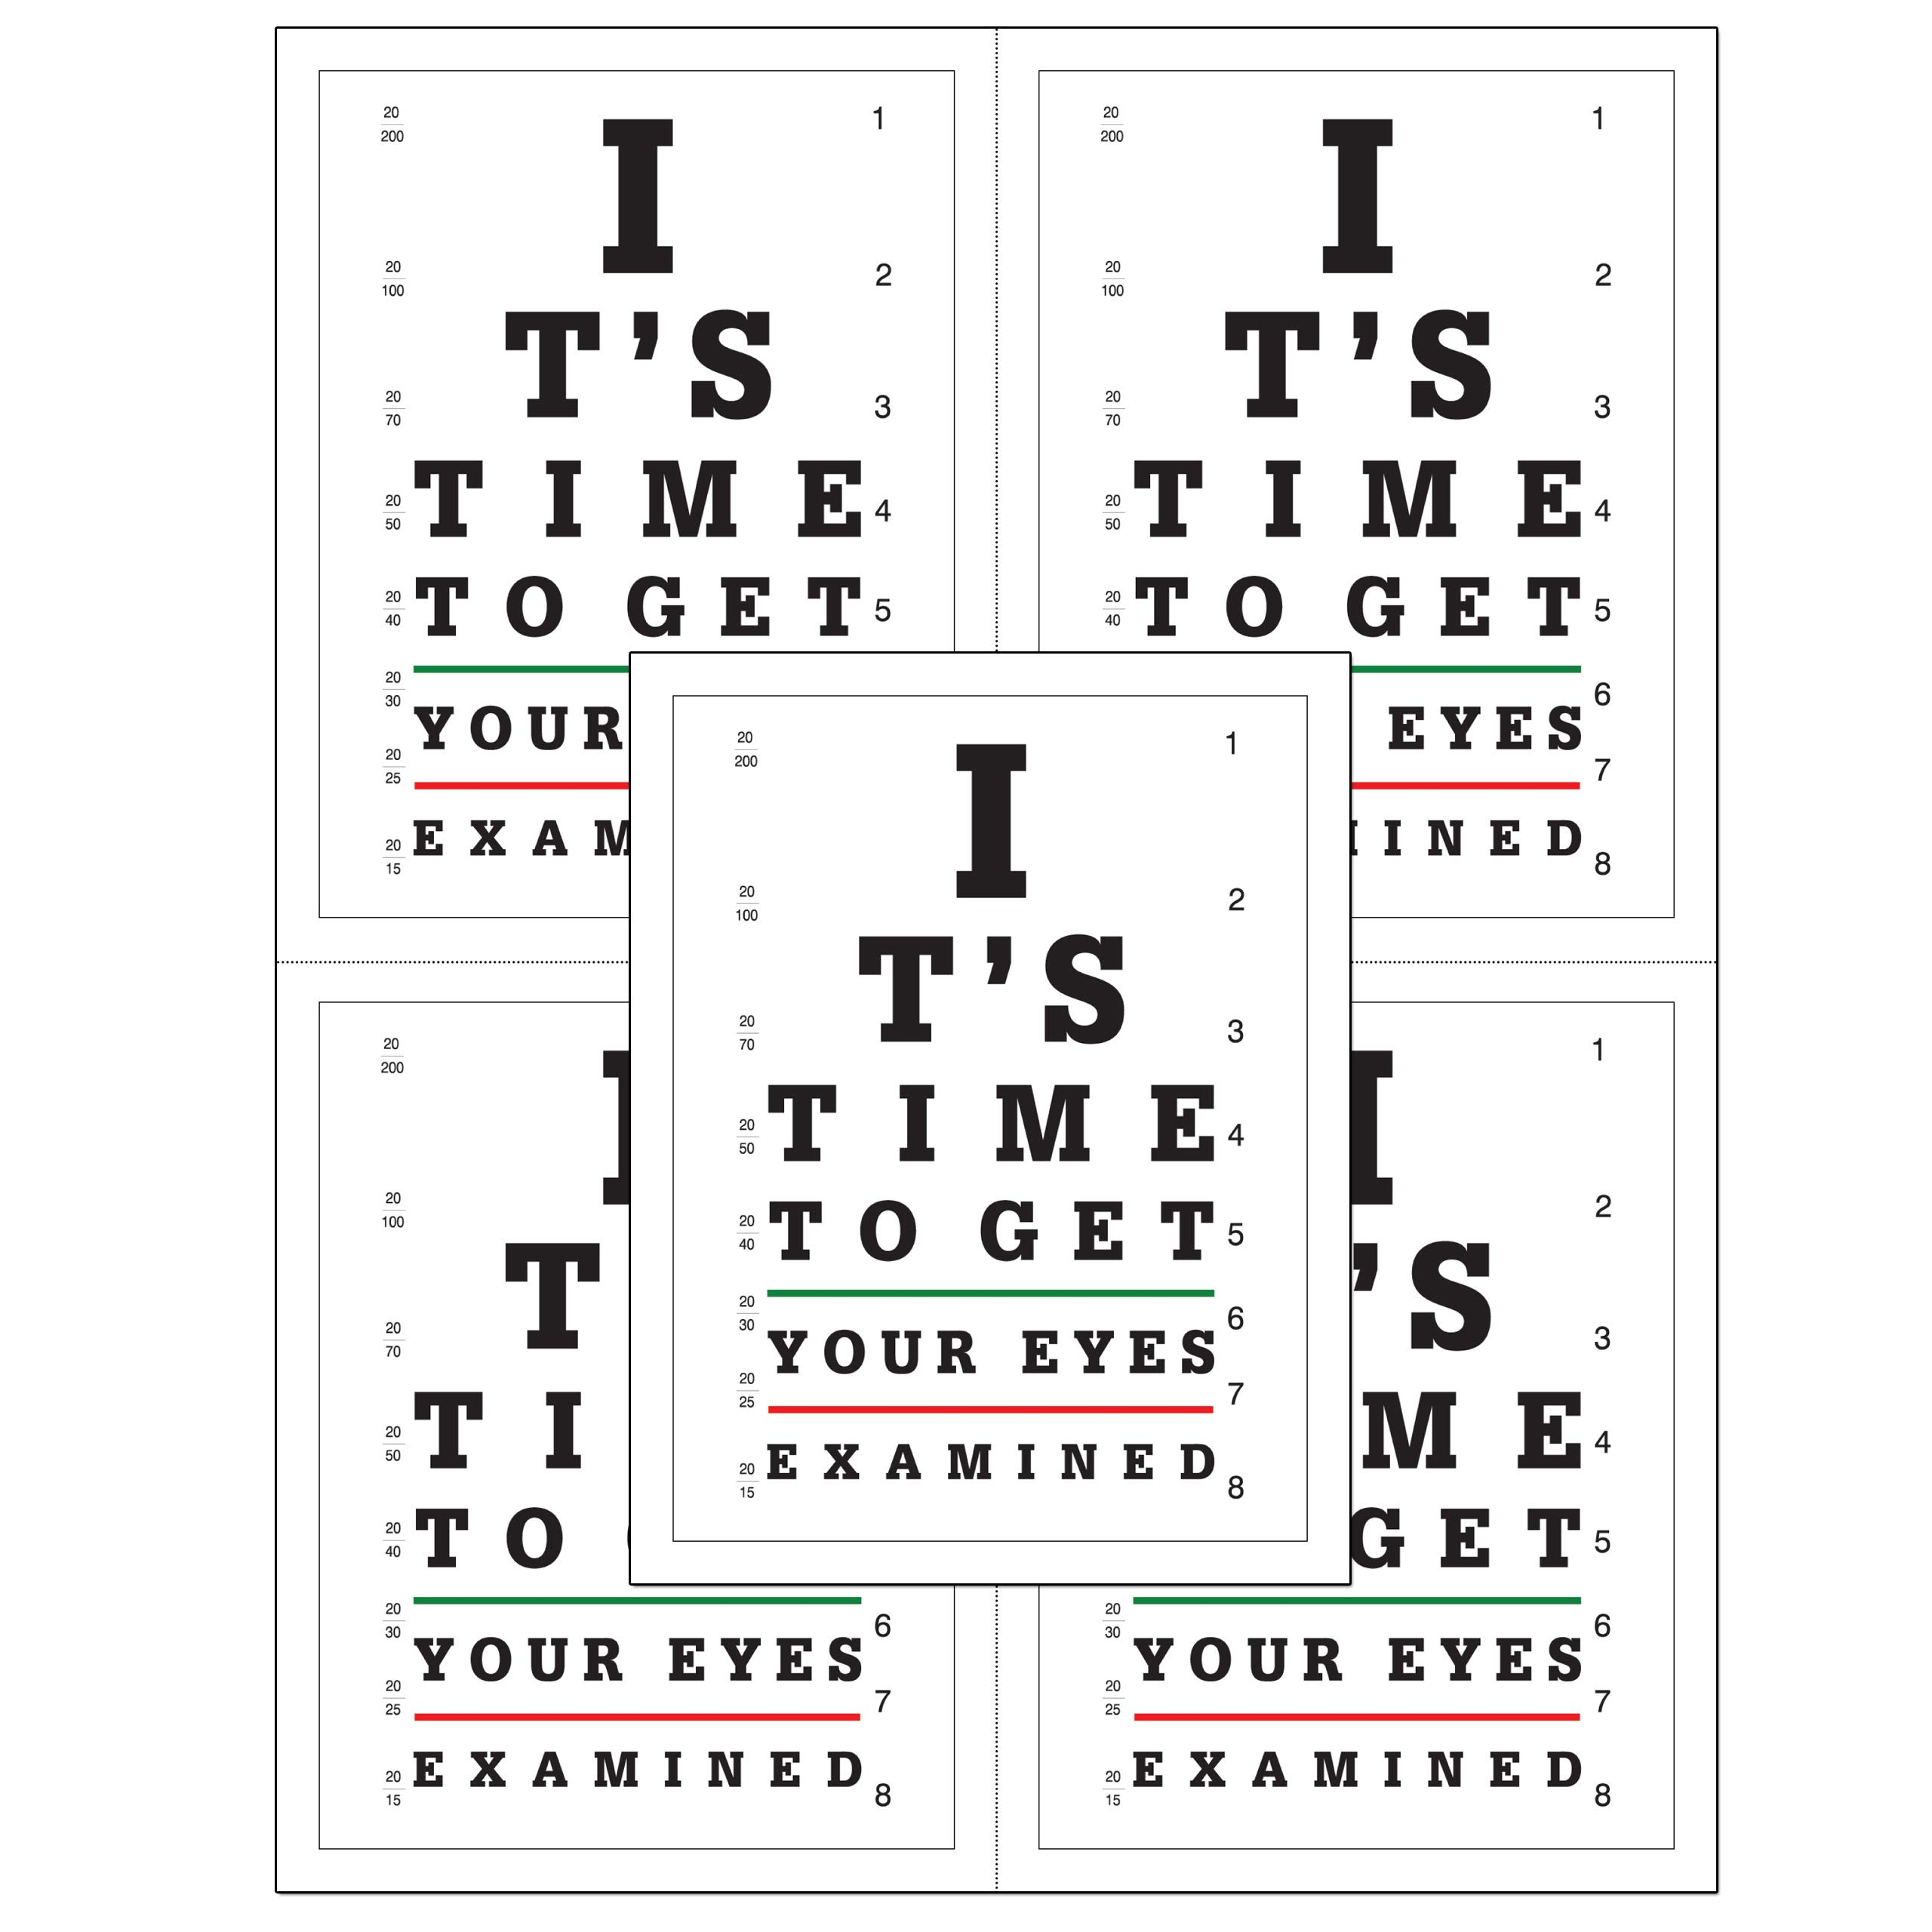 Laser Reminder Postcards, Optometric Appointment Reminder Postcards. 4 Cards Perforated for Tear-off at 4.25'' x 5.5'' on an 8.5'' x 11'' Sheet of 8 Pt Card Stock. (500)